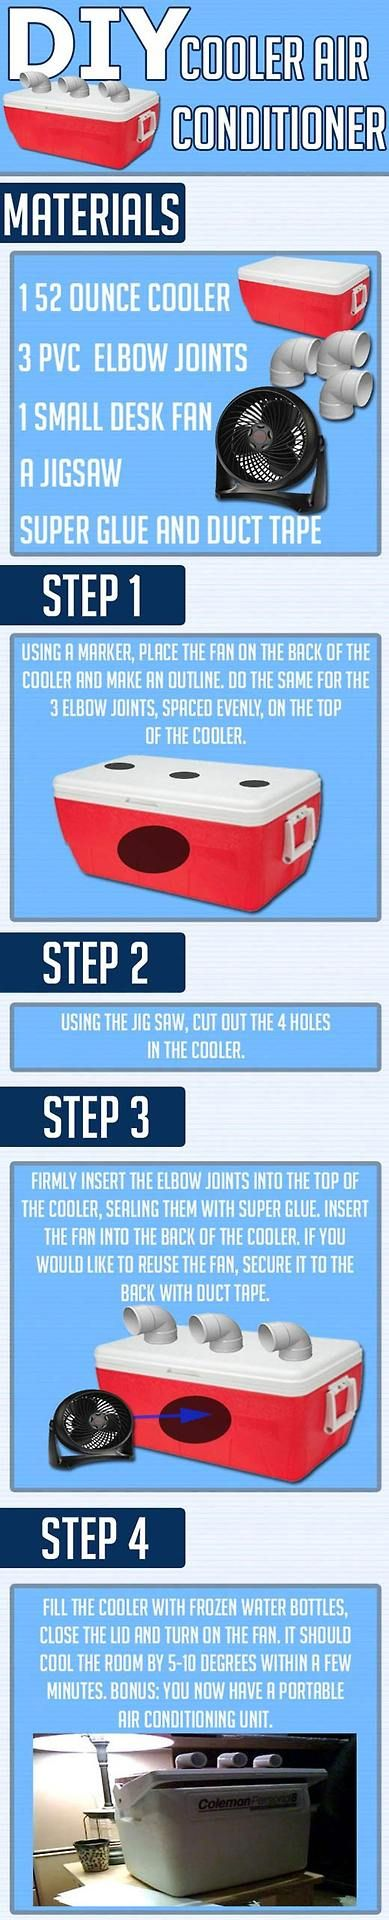 diy air conditioner from cooler.  maybe for camping during the summer?  I dunno...